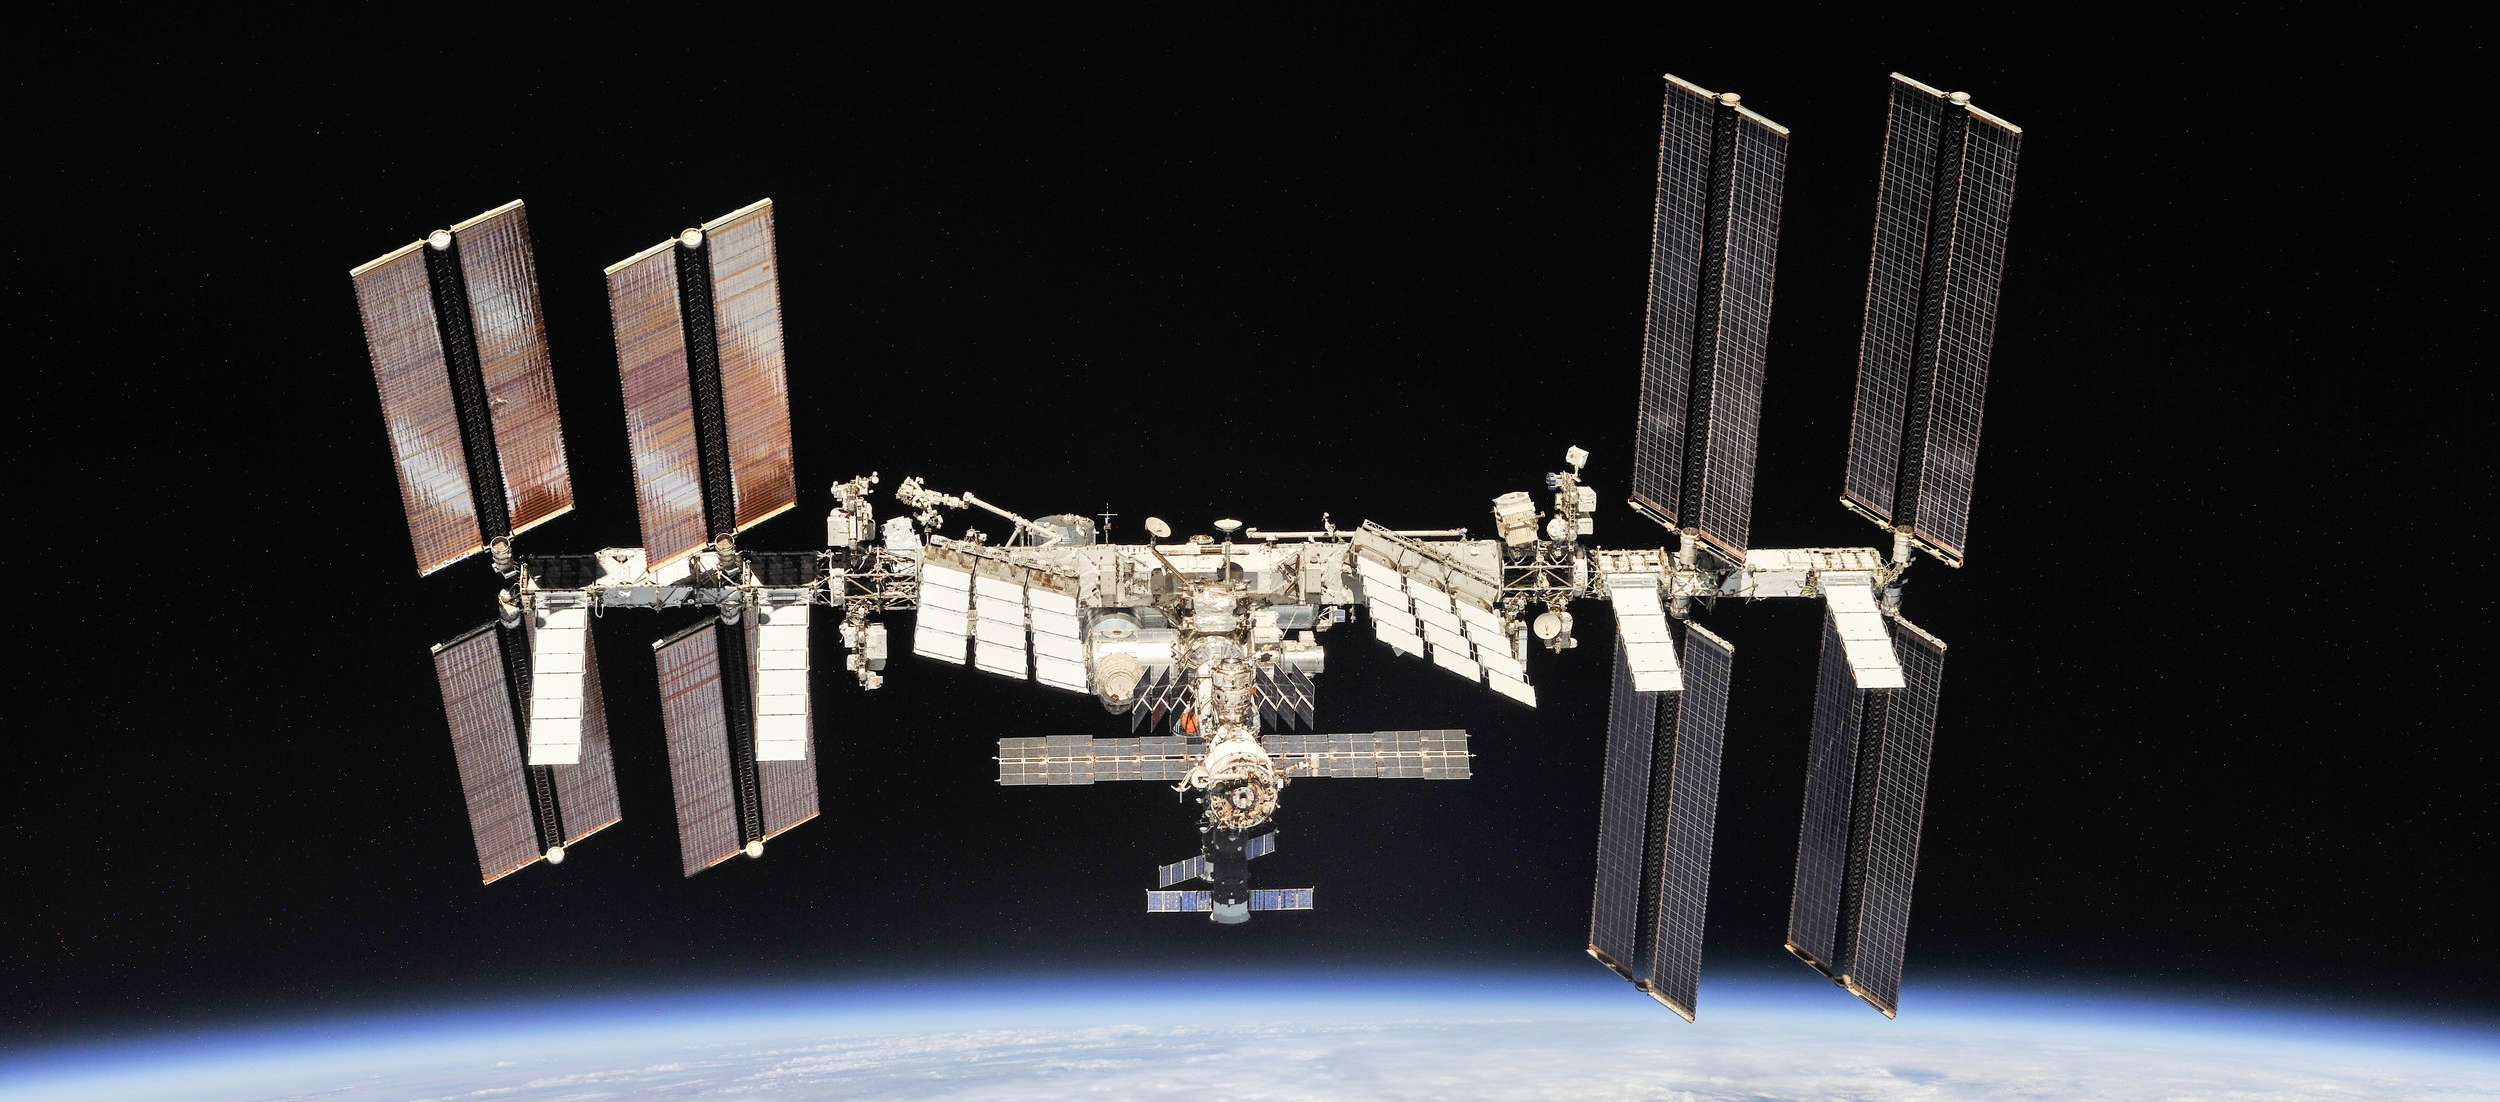 The International Space Station as seen following the departure of the Soyuz MS-08 spacecraft on Oct. 4, 2018. Progress MS-10 is expected to dock at the aft port of the Zvezda module at the rear of the space station. Credit: NASA/Roscosmos